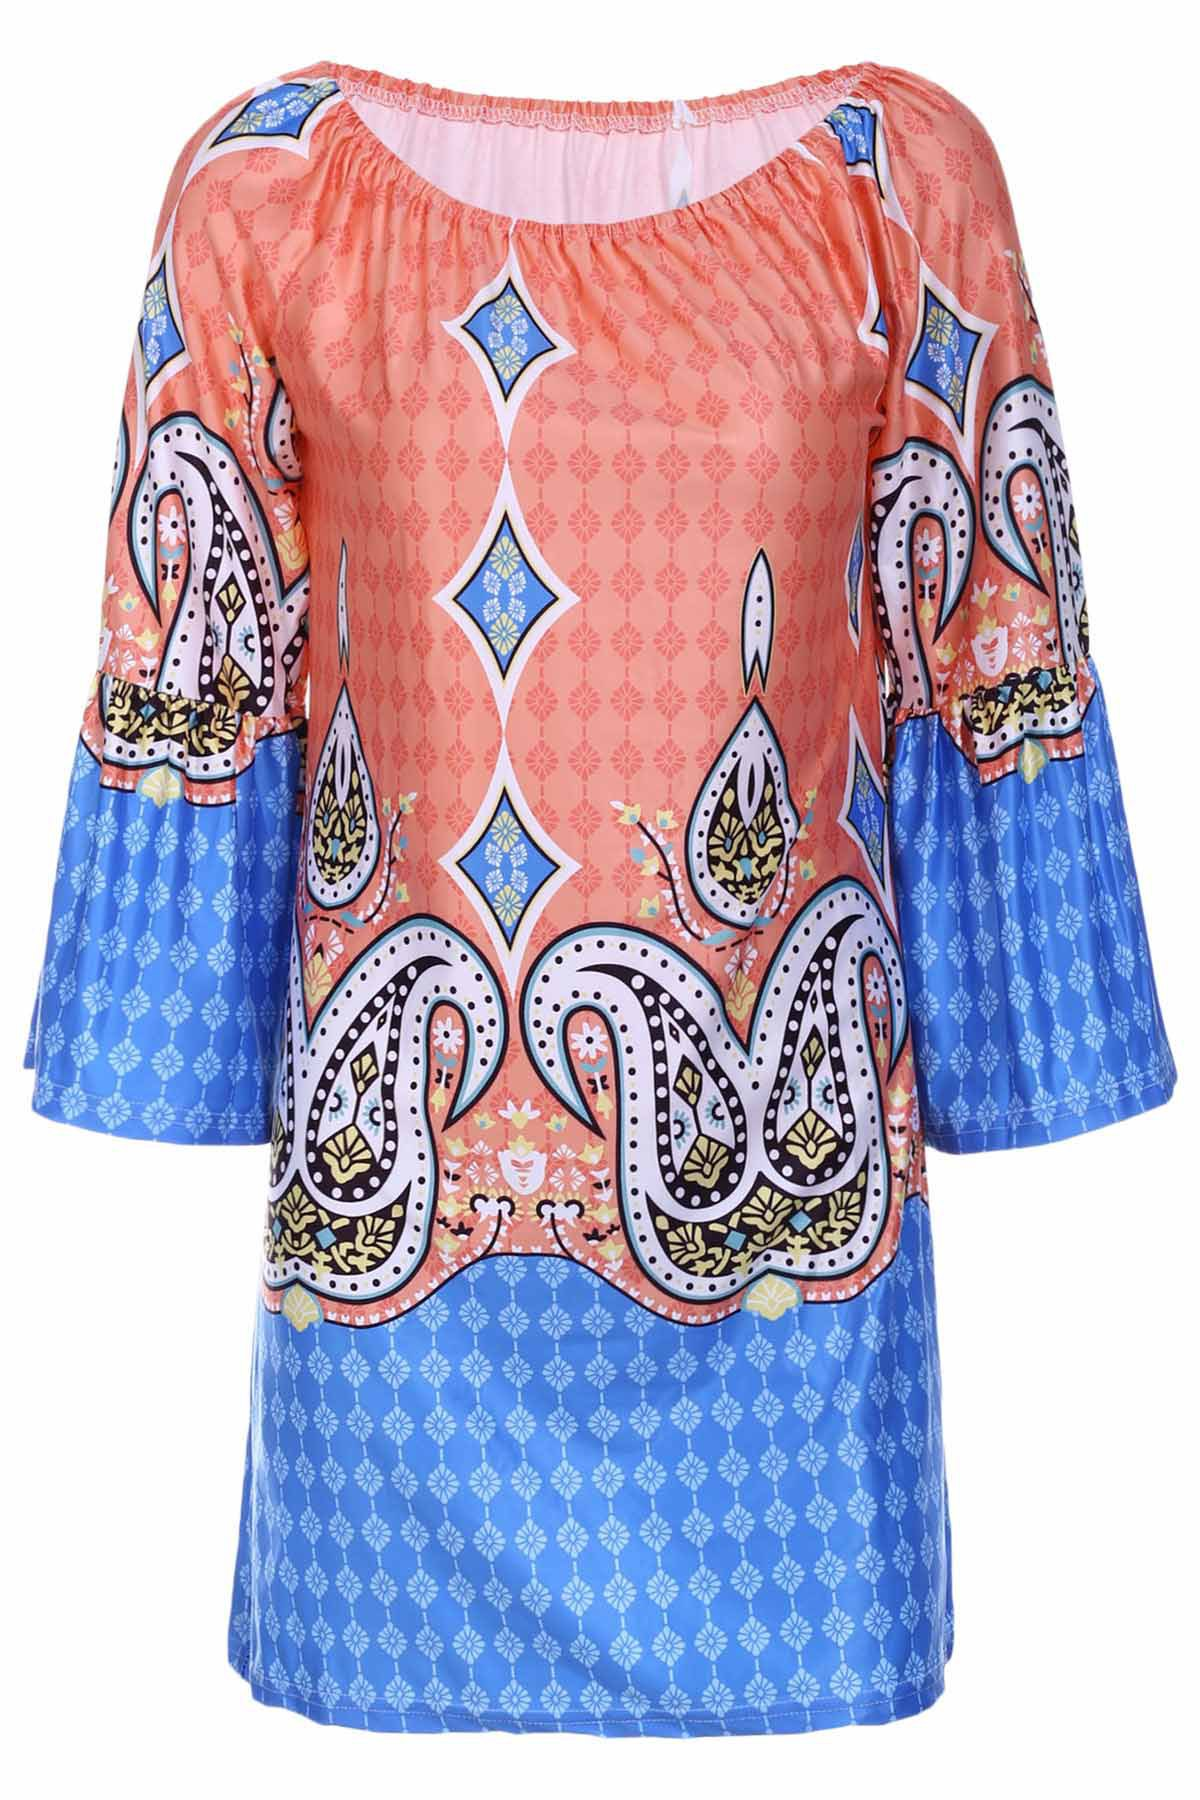 Bohemian Style Women's Scoop Neck Flare Sleeve Printed Dress